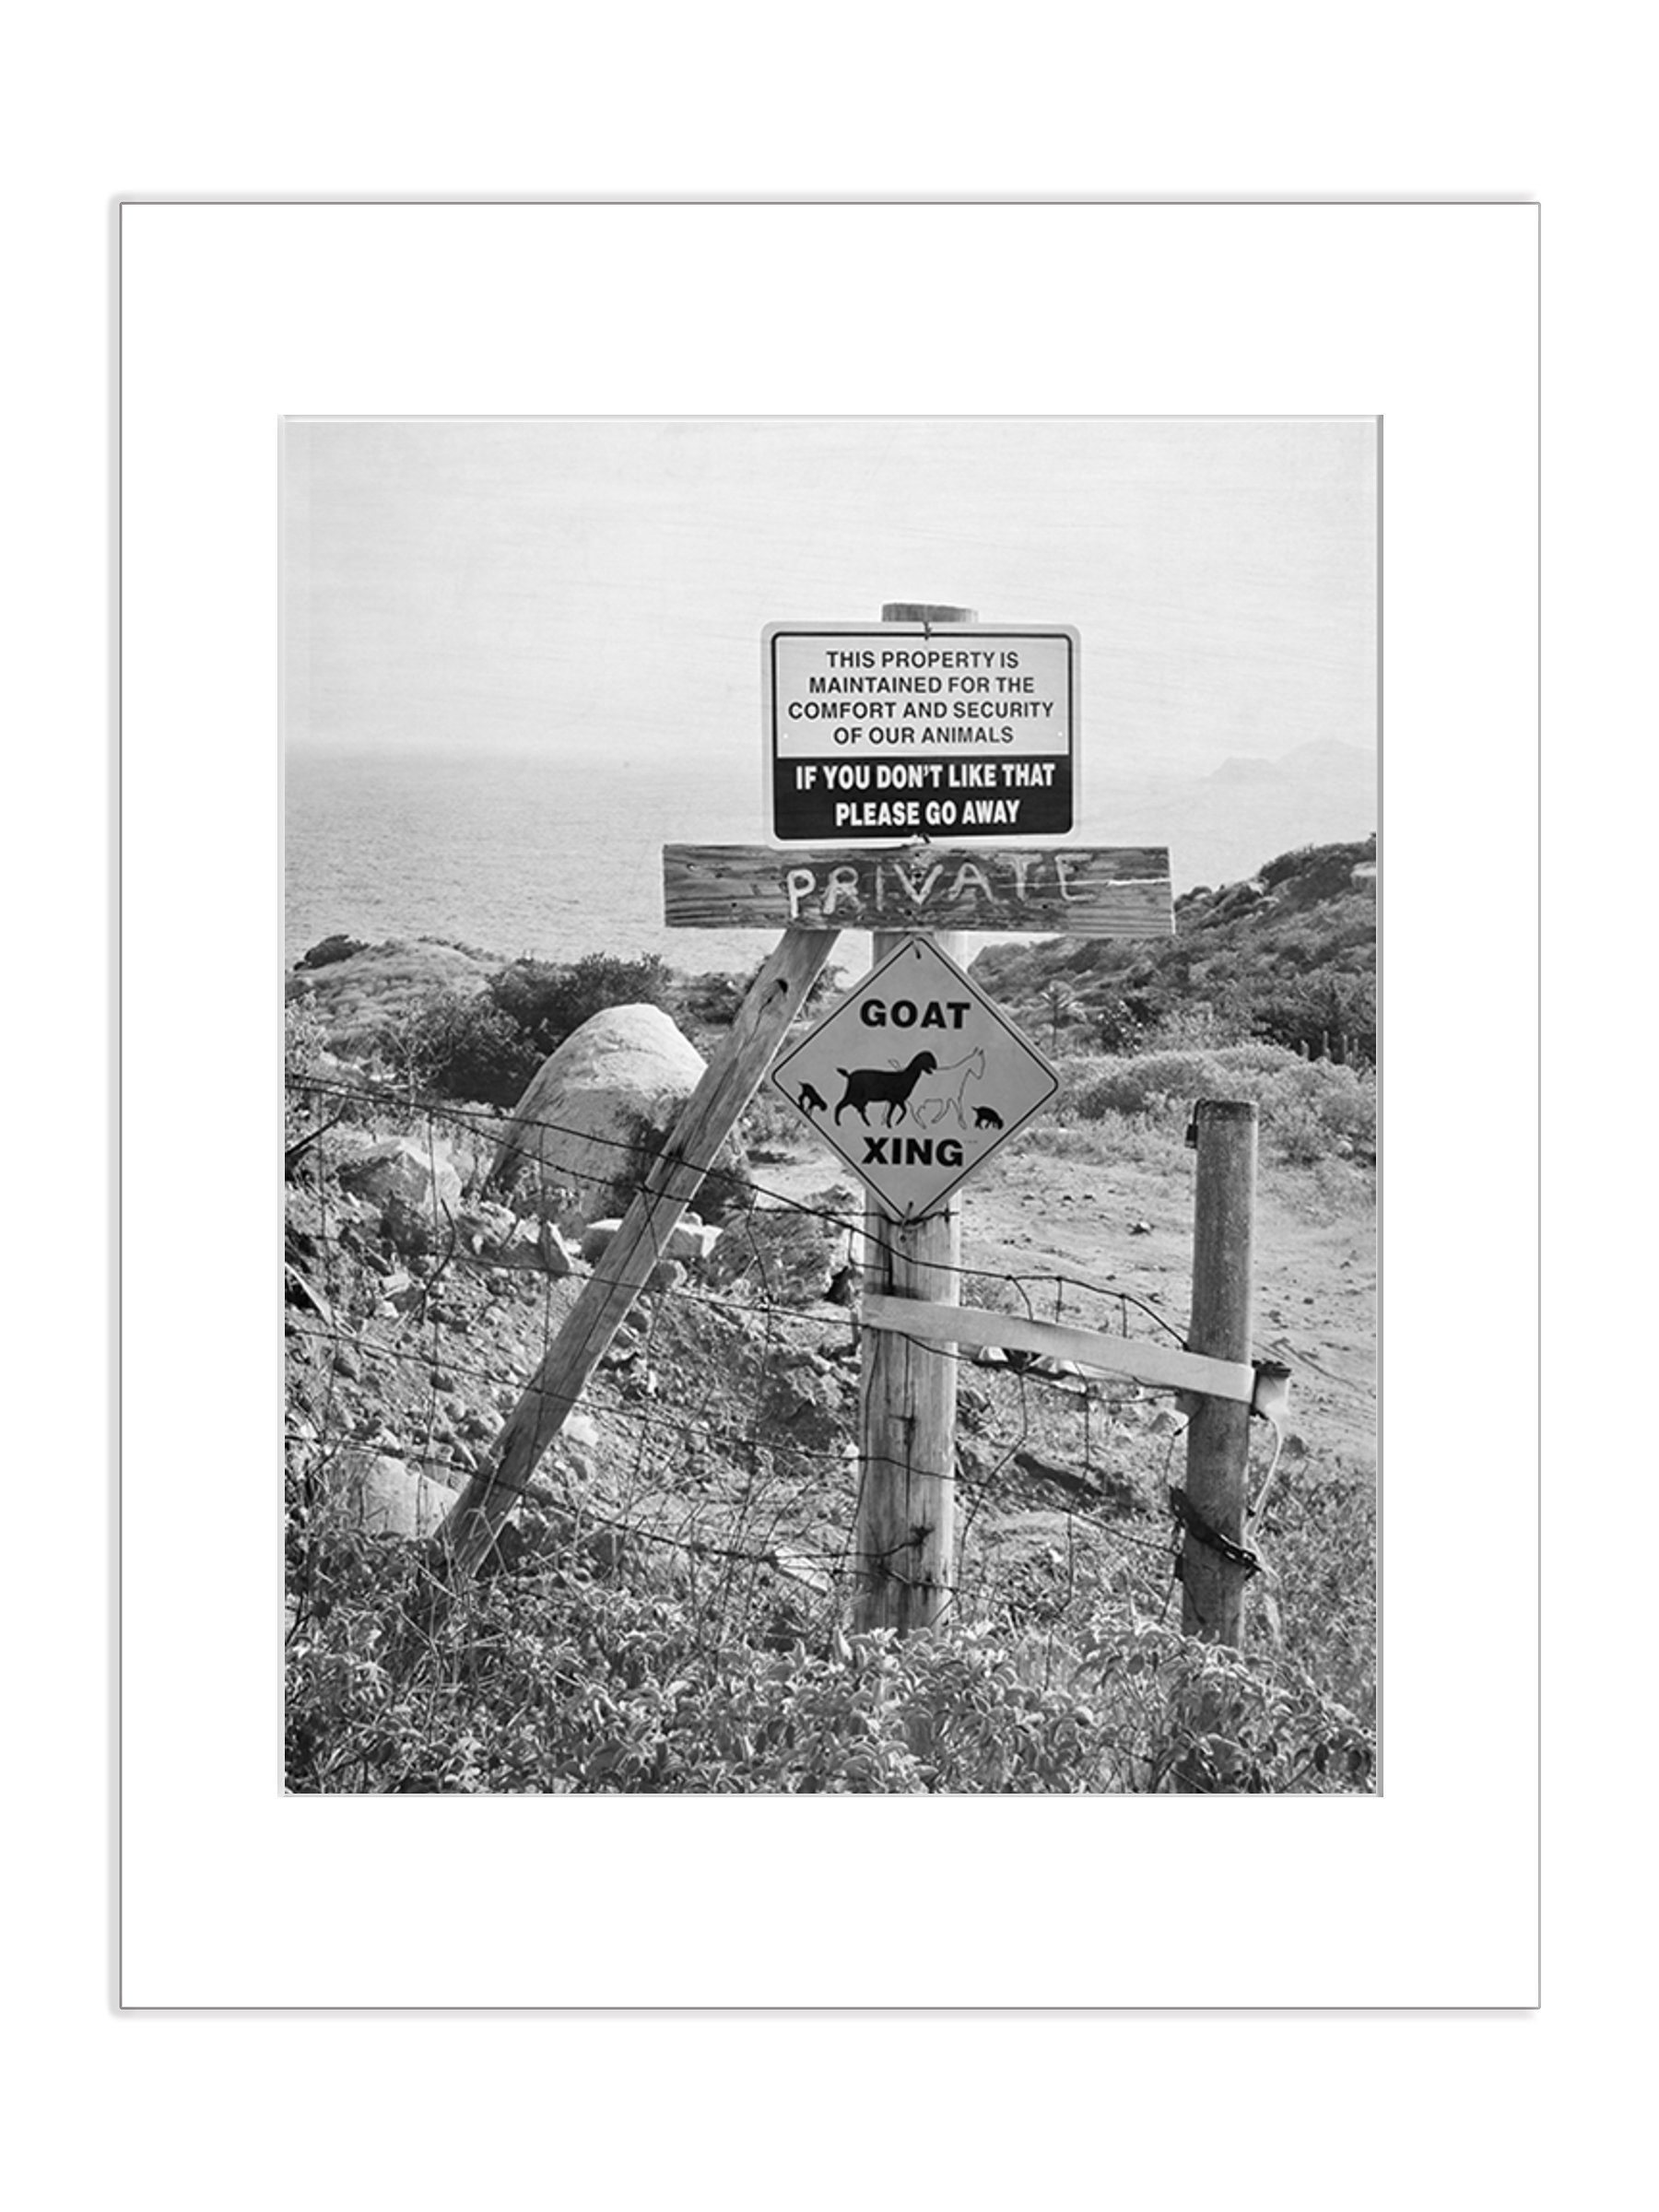 Funny Goat and Animal Crossing Street Sign 5x7 Inch Matted Black and White Photo